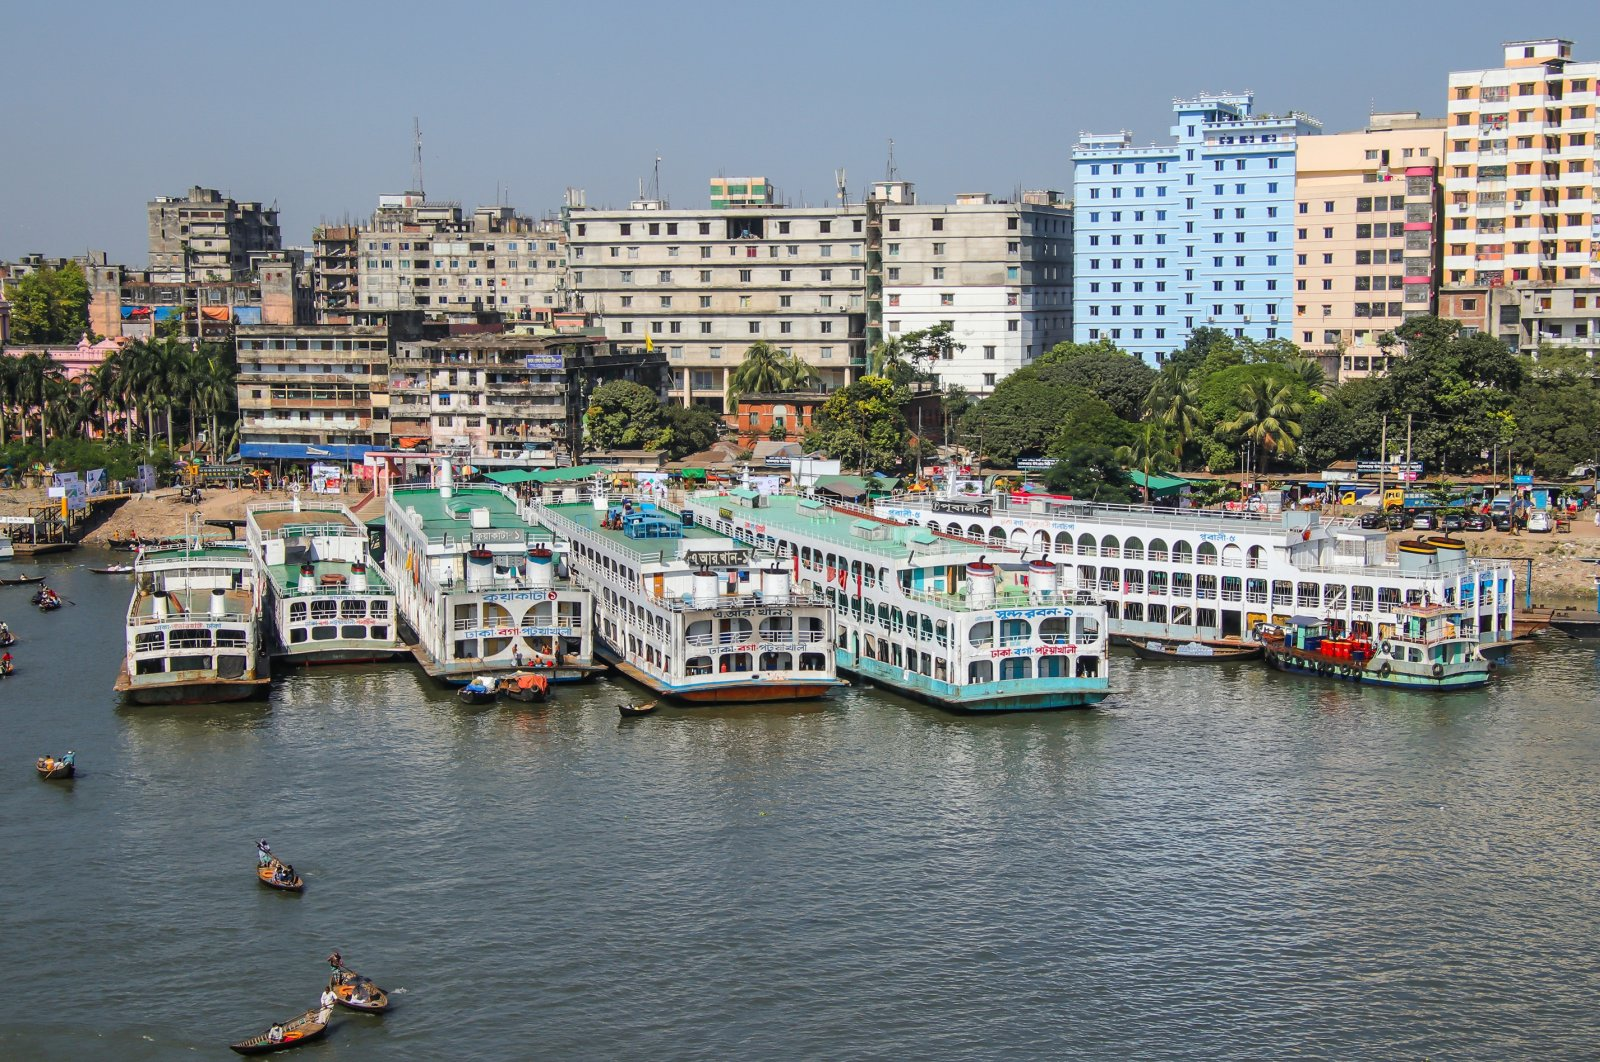 Sadarghat, situated on the banks of the Buriganga River, is the country's largest and busiest river port, Dhaka, Bangladesh, Nov. 10, 2020. (Shutterstock Photo)